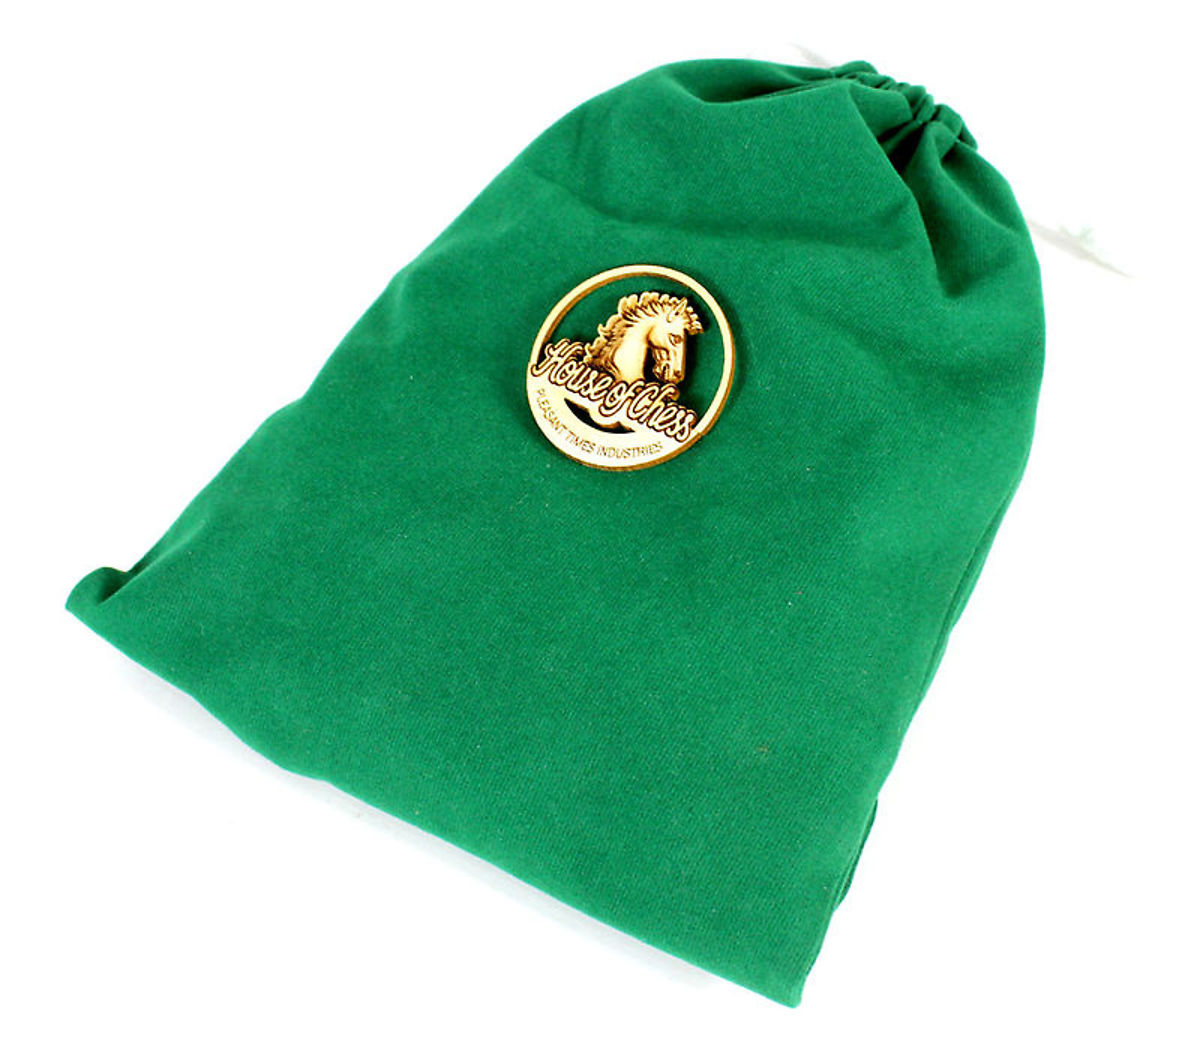 Velvet pouch included with this purchase.